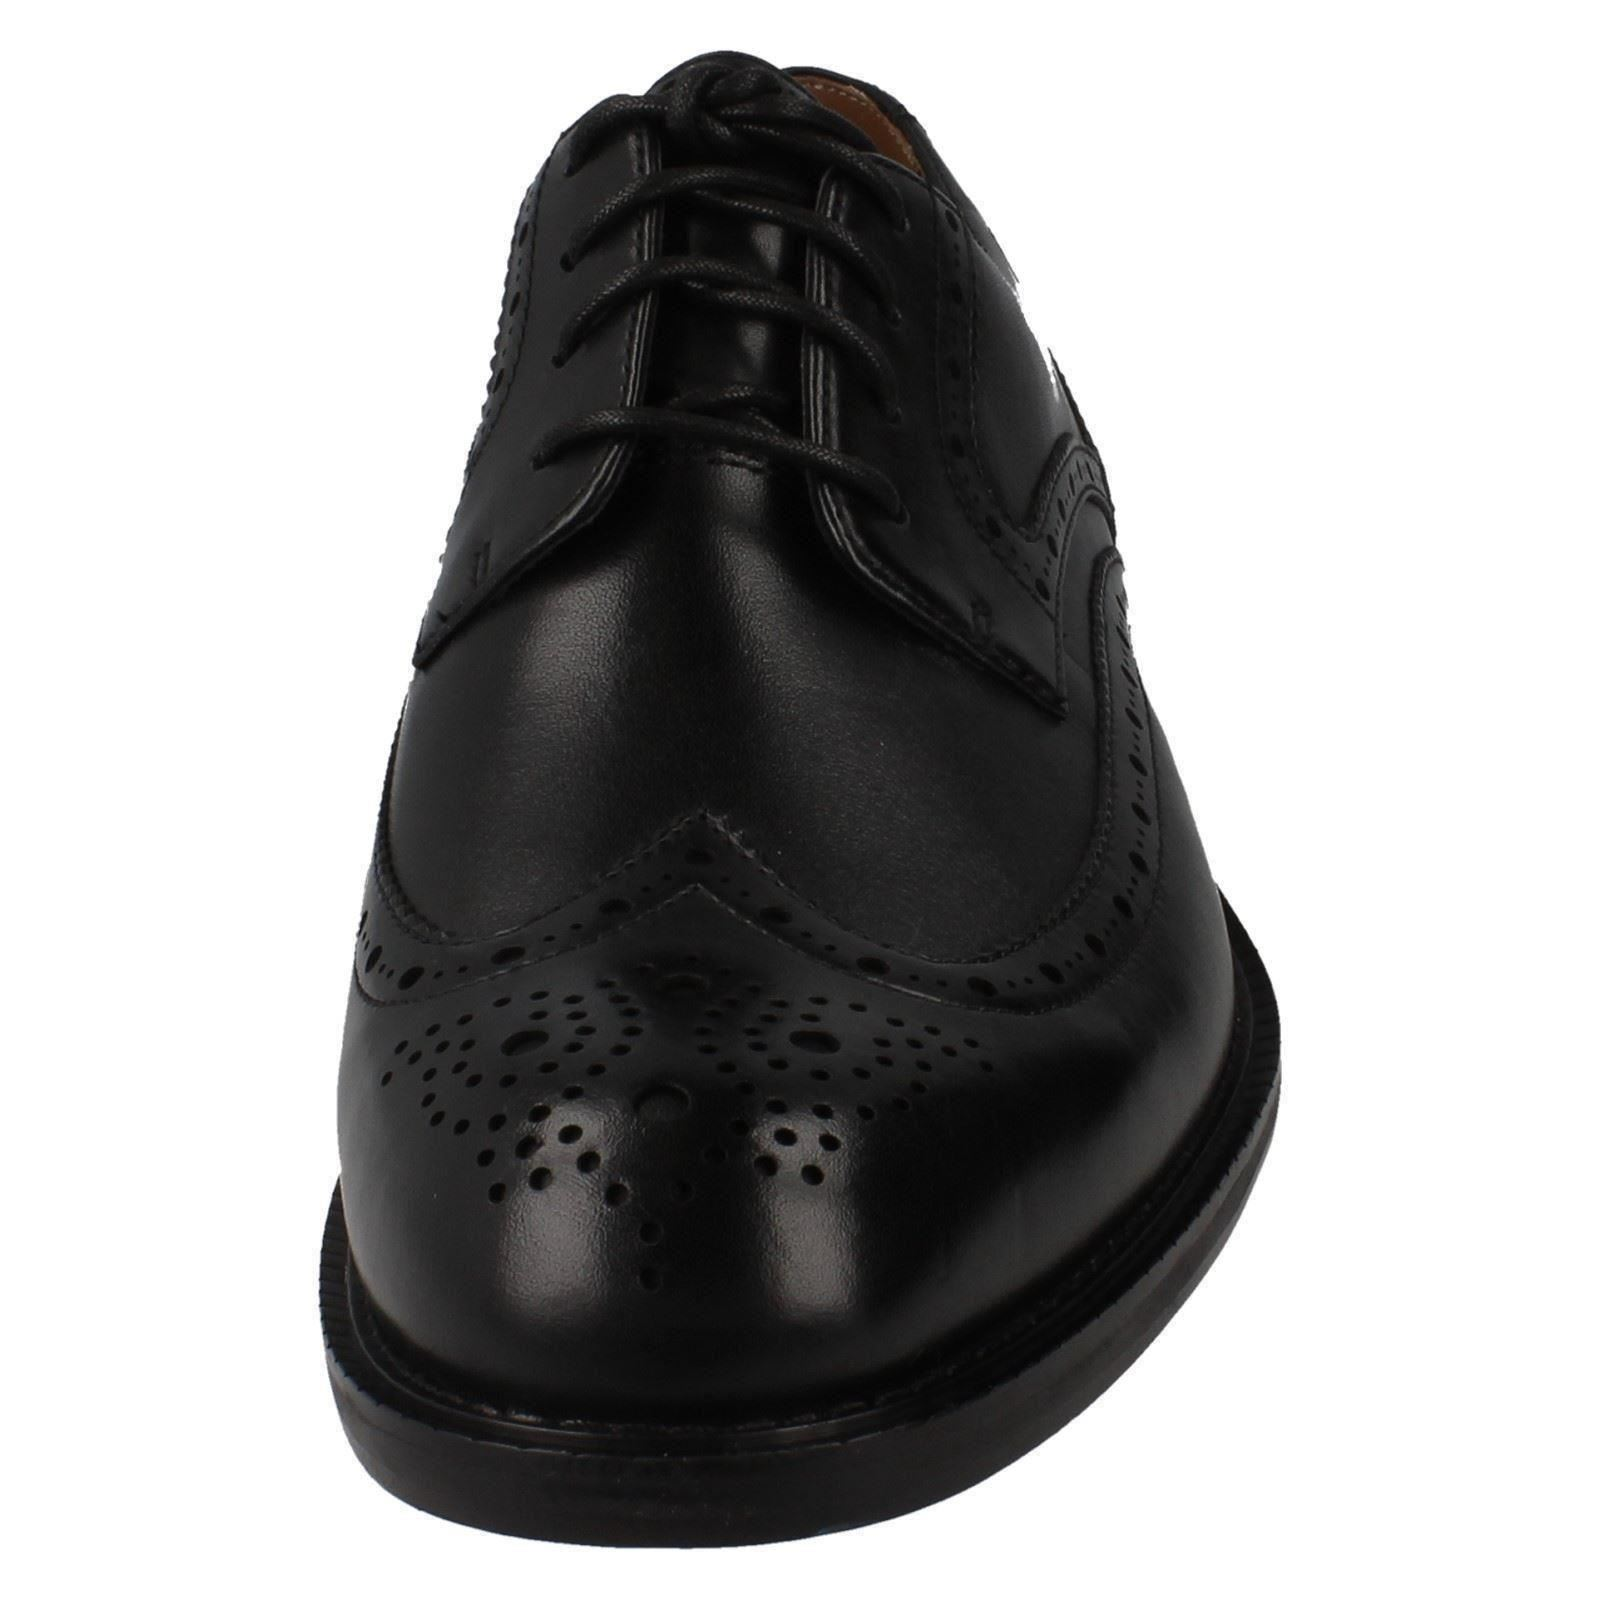 364cd8ffffc Mens Clarks Formal Lace up Brogue Shoes Dorset Limit Black UK 9.5 H. About  this product. Picture 1 of 9  Picture 2 of 9 ...